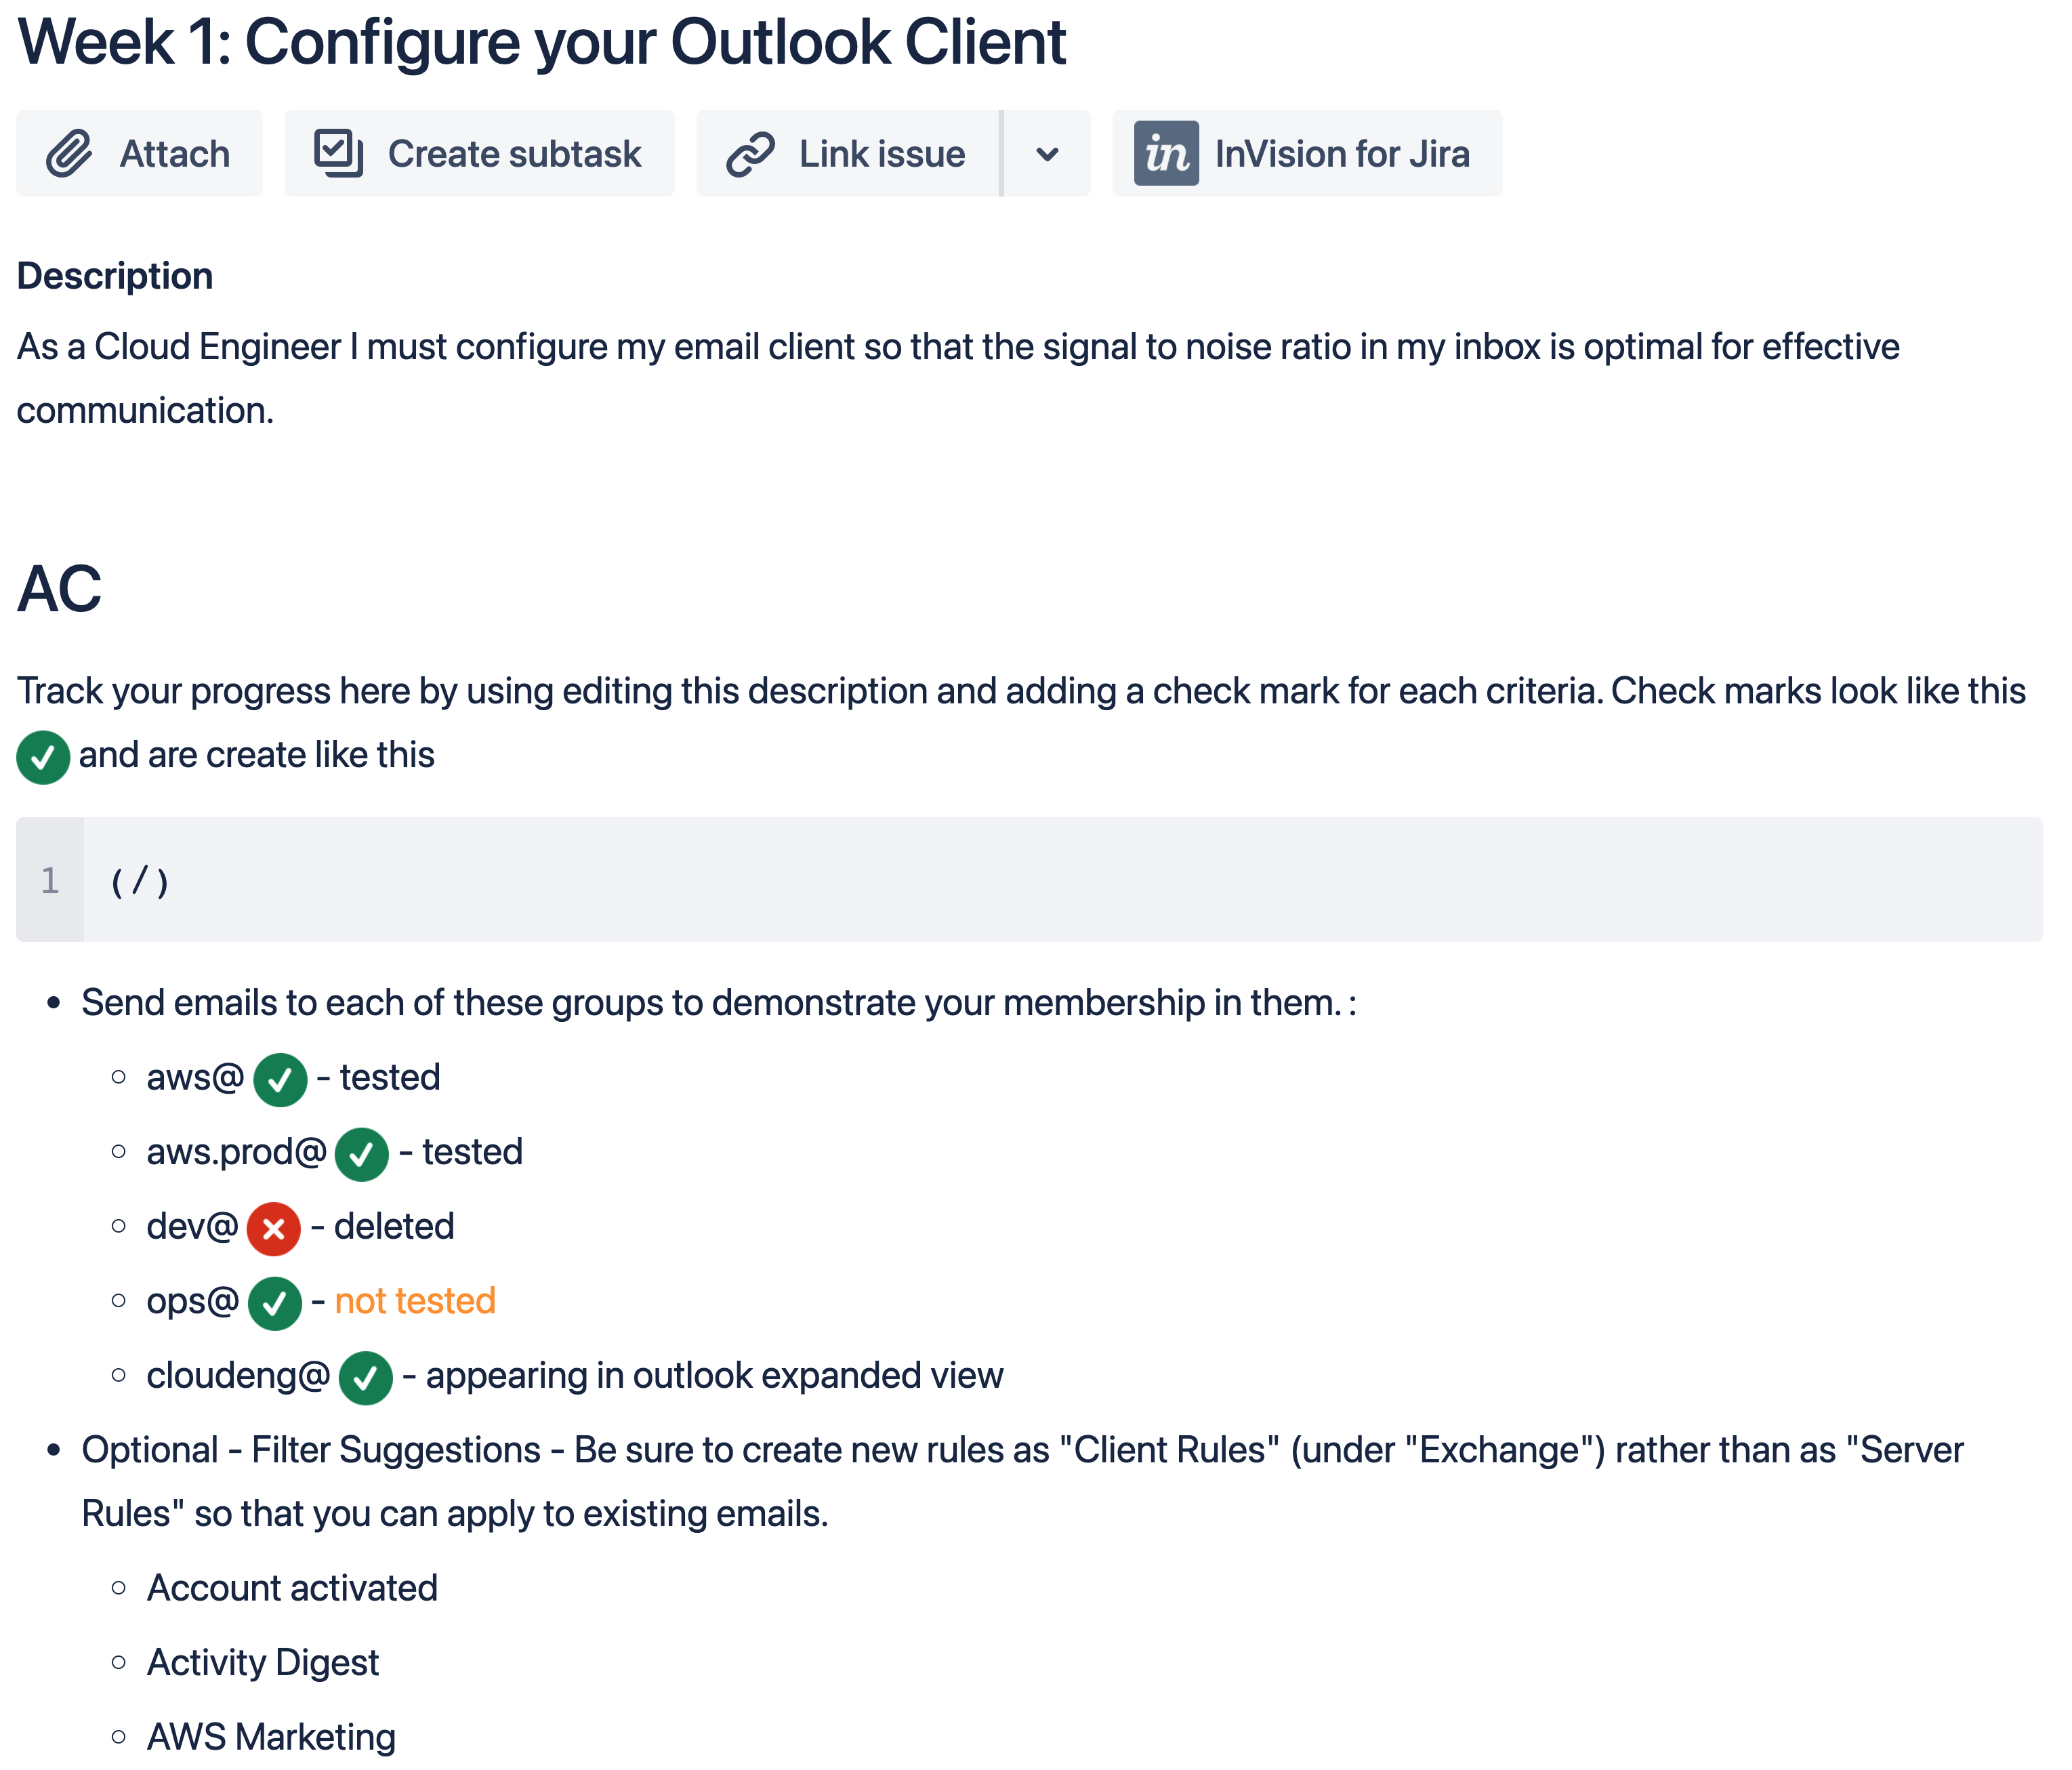 week1-outlook-client-contrastsecurity